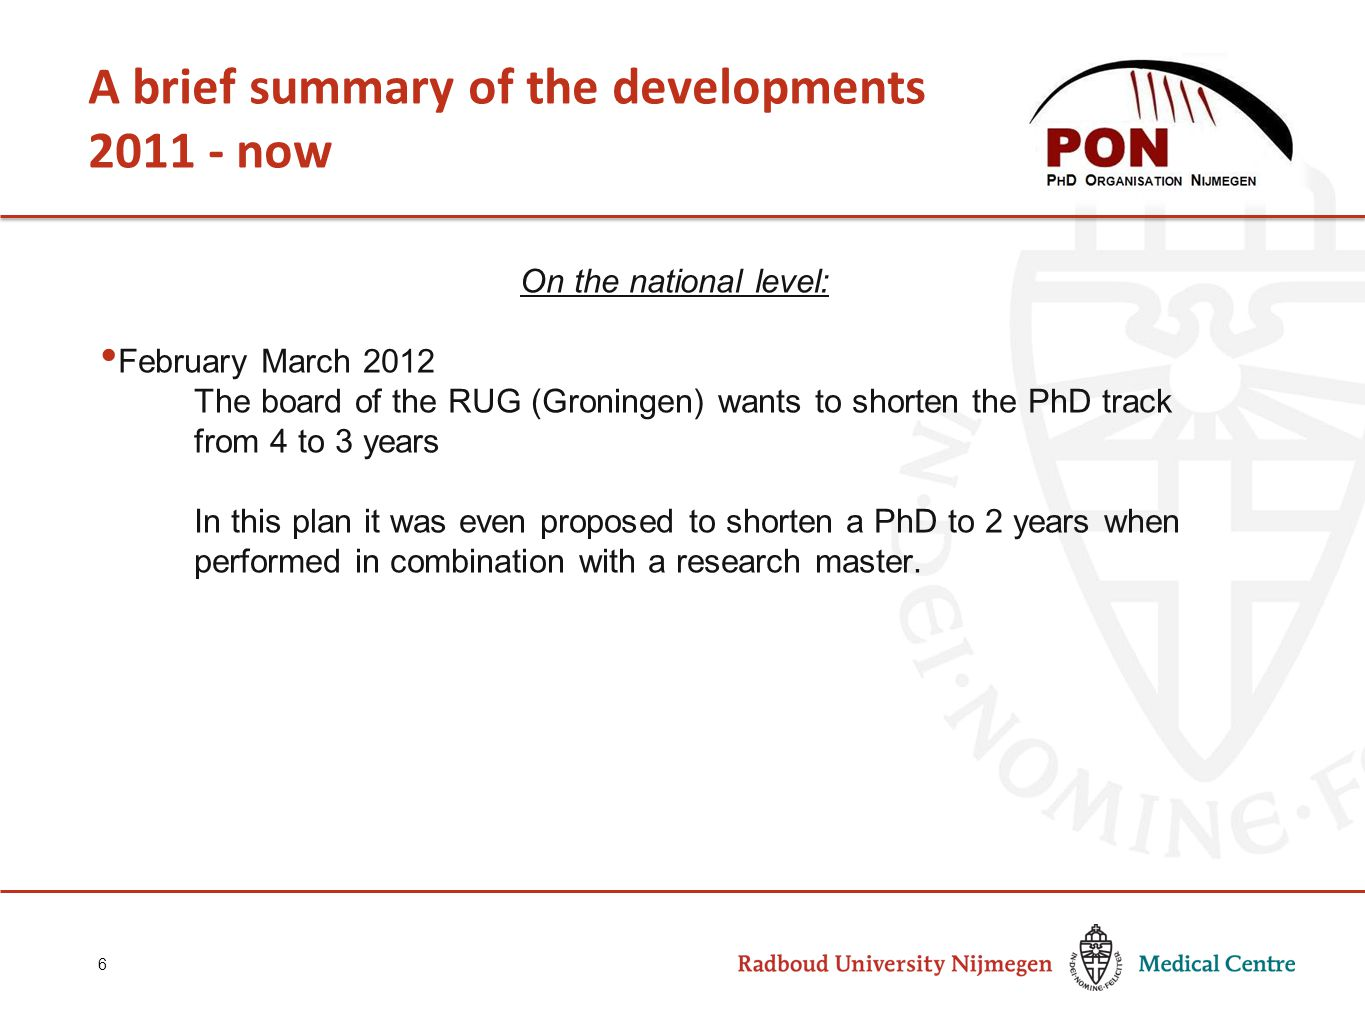 A brief summary of the developments 2011 - now 6 On the national level: February March 2012 The board of the RUG (Groningen) wants to shorten the PhD track from 4 to 3 years In this plan it was even proposed to shorten a PhD to 2 years when performed in combination with a research master.